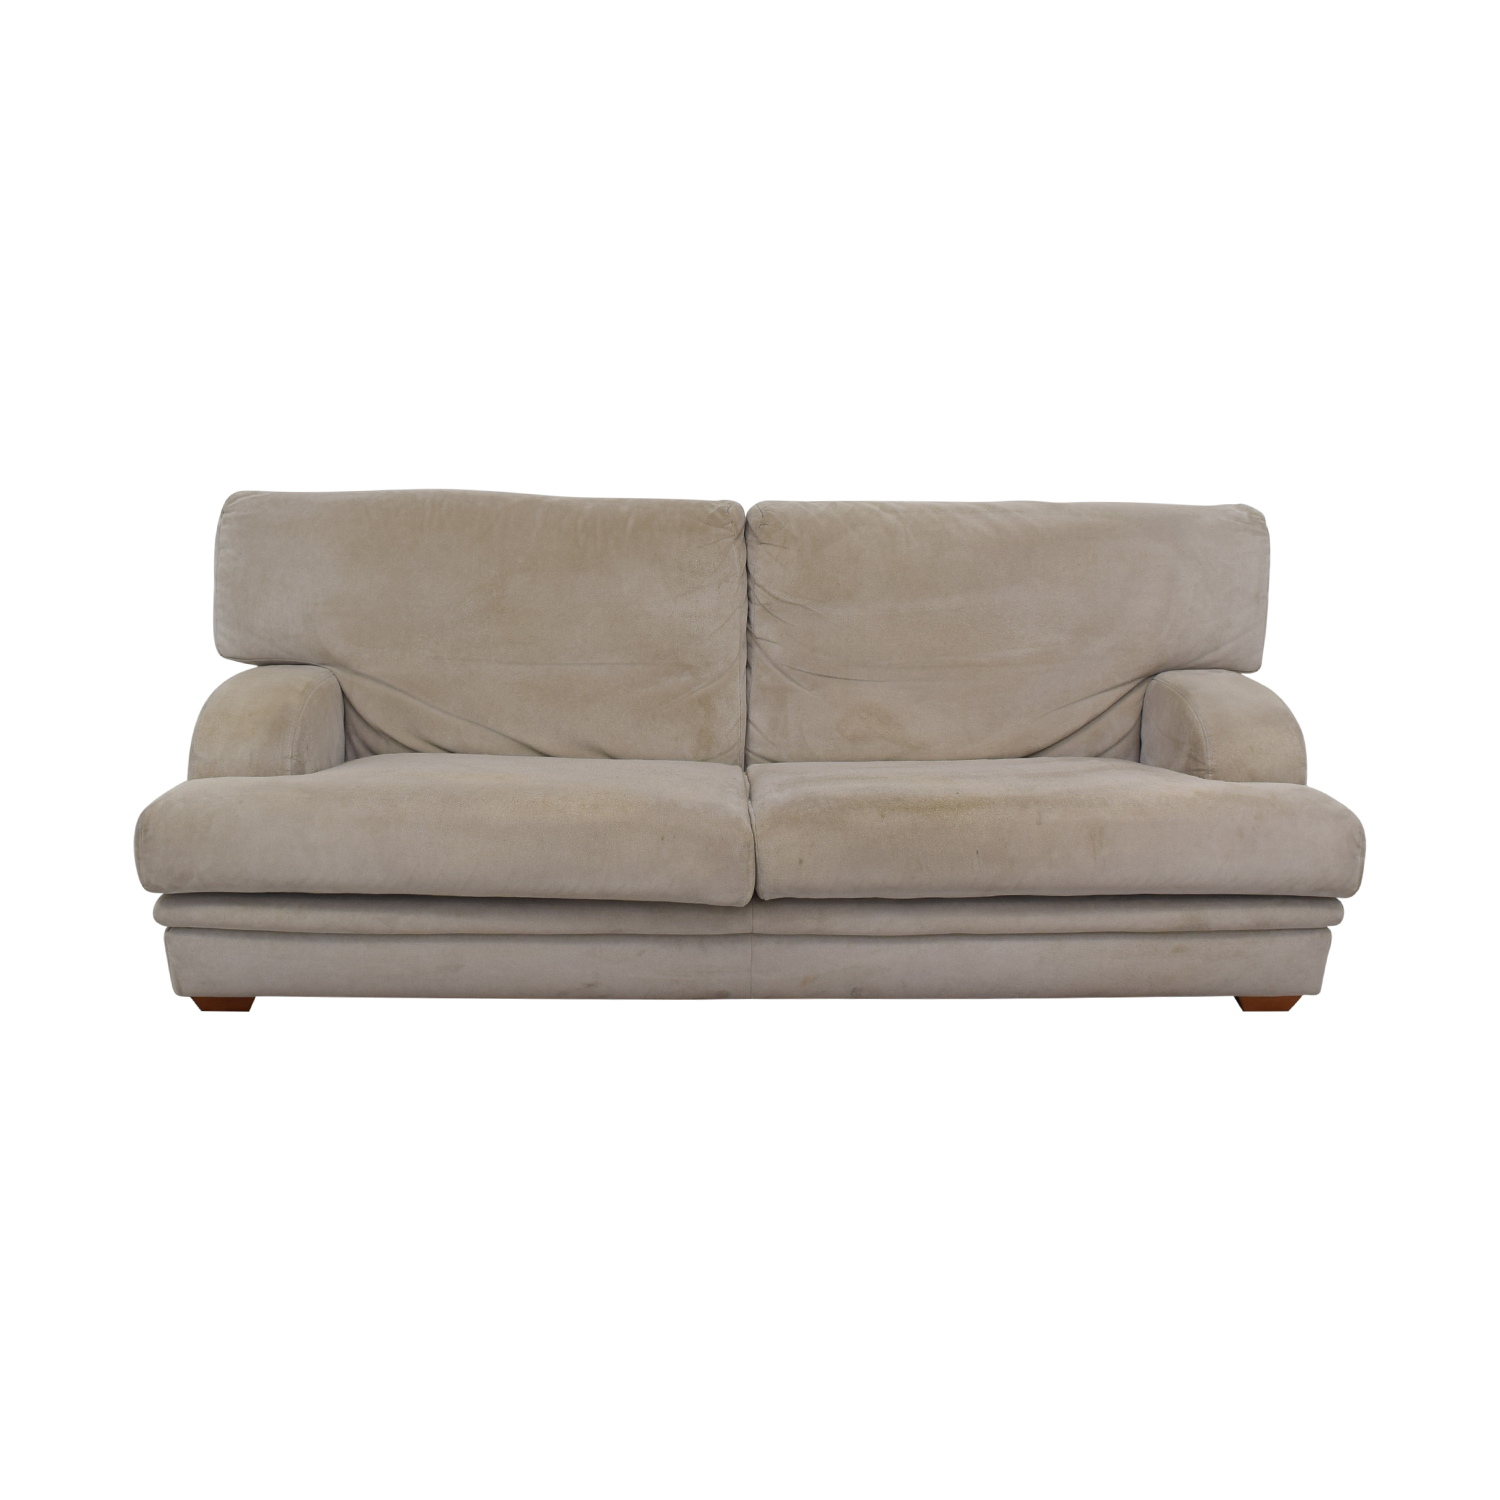 Ligne Roset Ligne Roset Two-Cushion Sofa dimensions